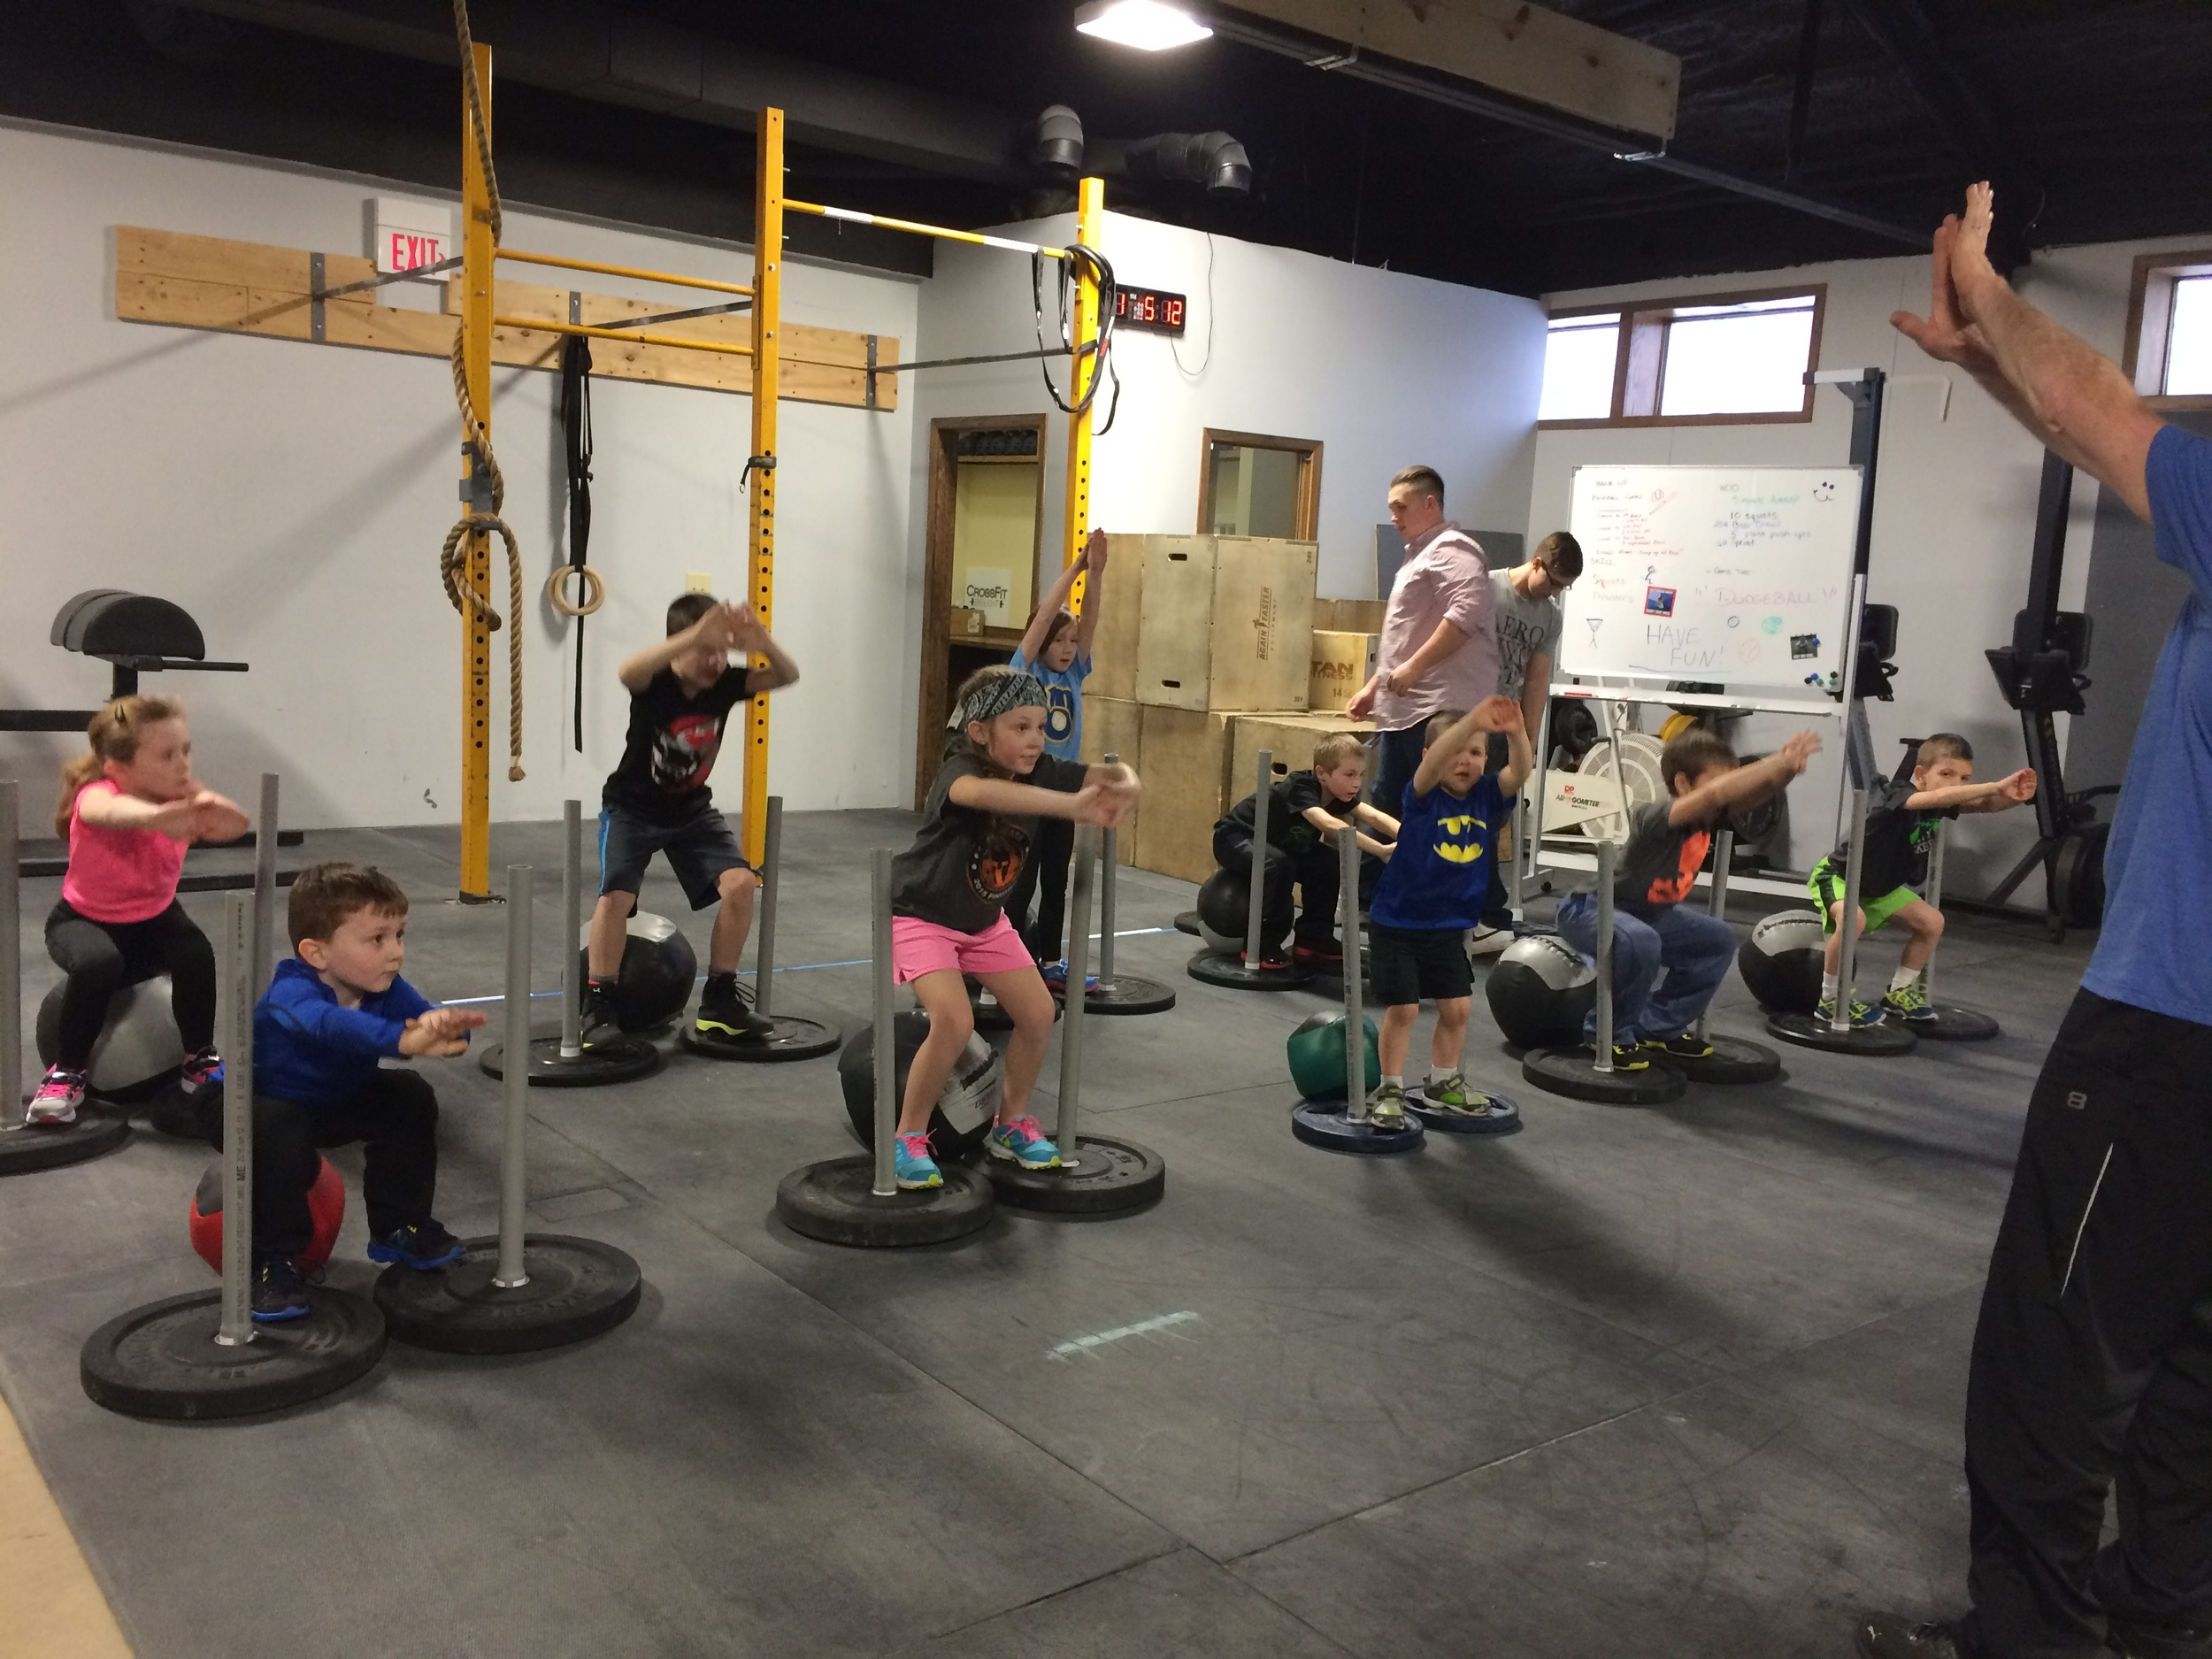 Coach Mike leading on our Rock Star CrossFit Kids on proper Squat form.